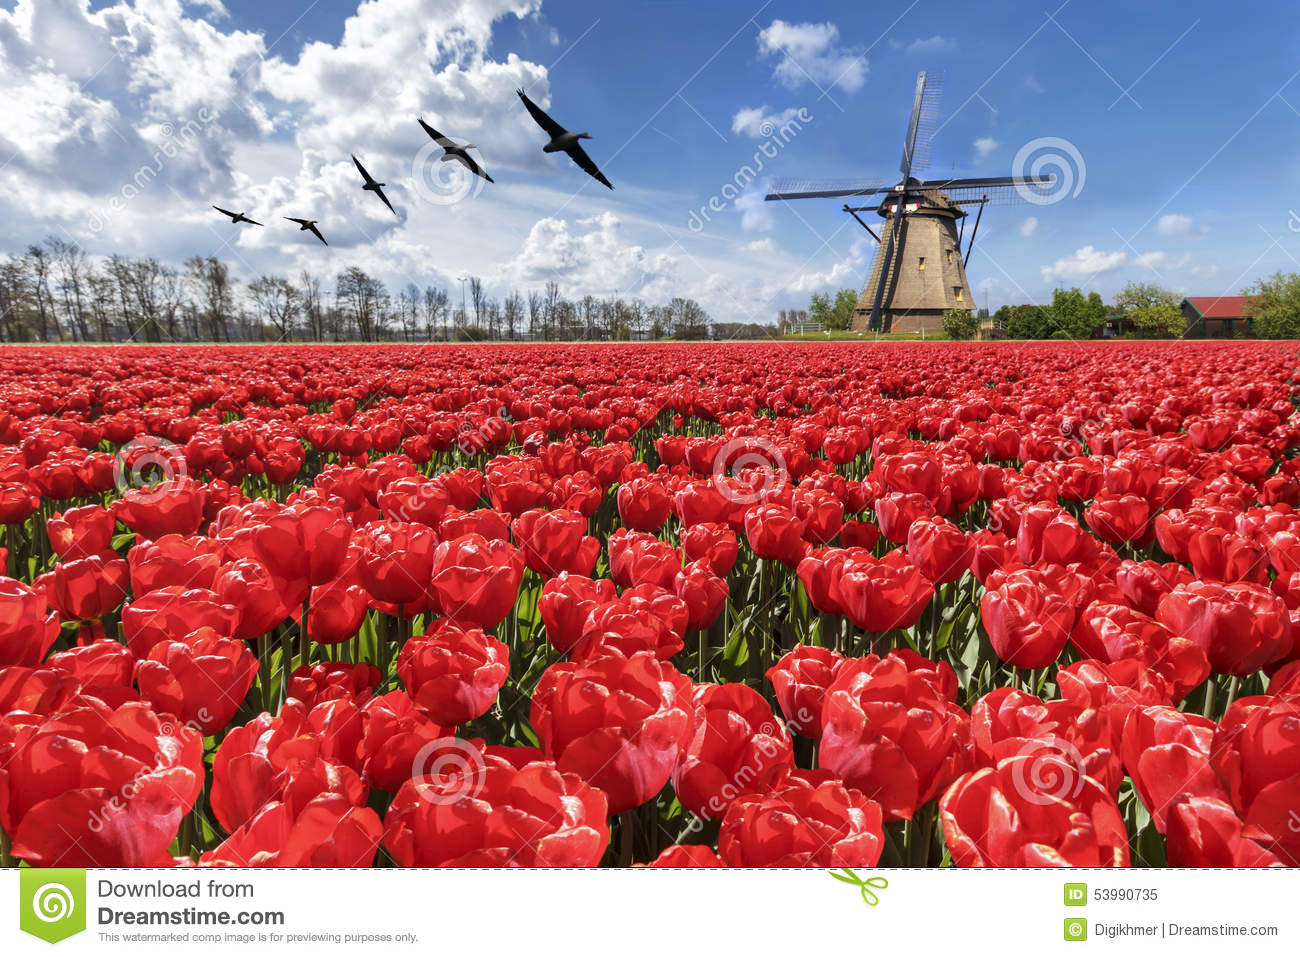 Geese flying over endless red tulip farm